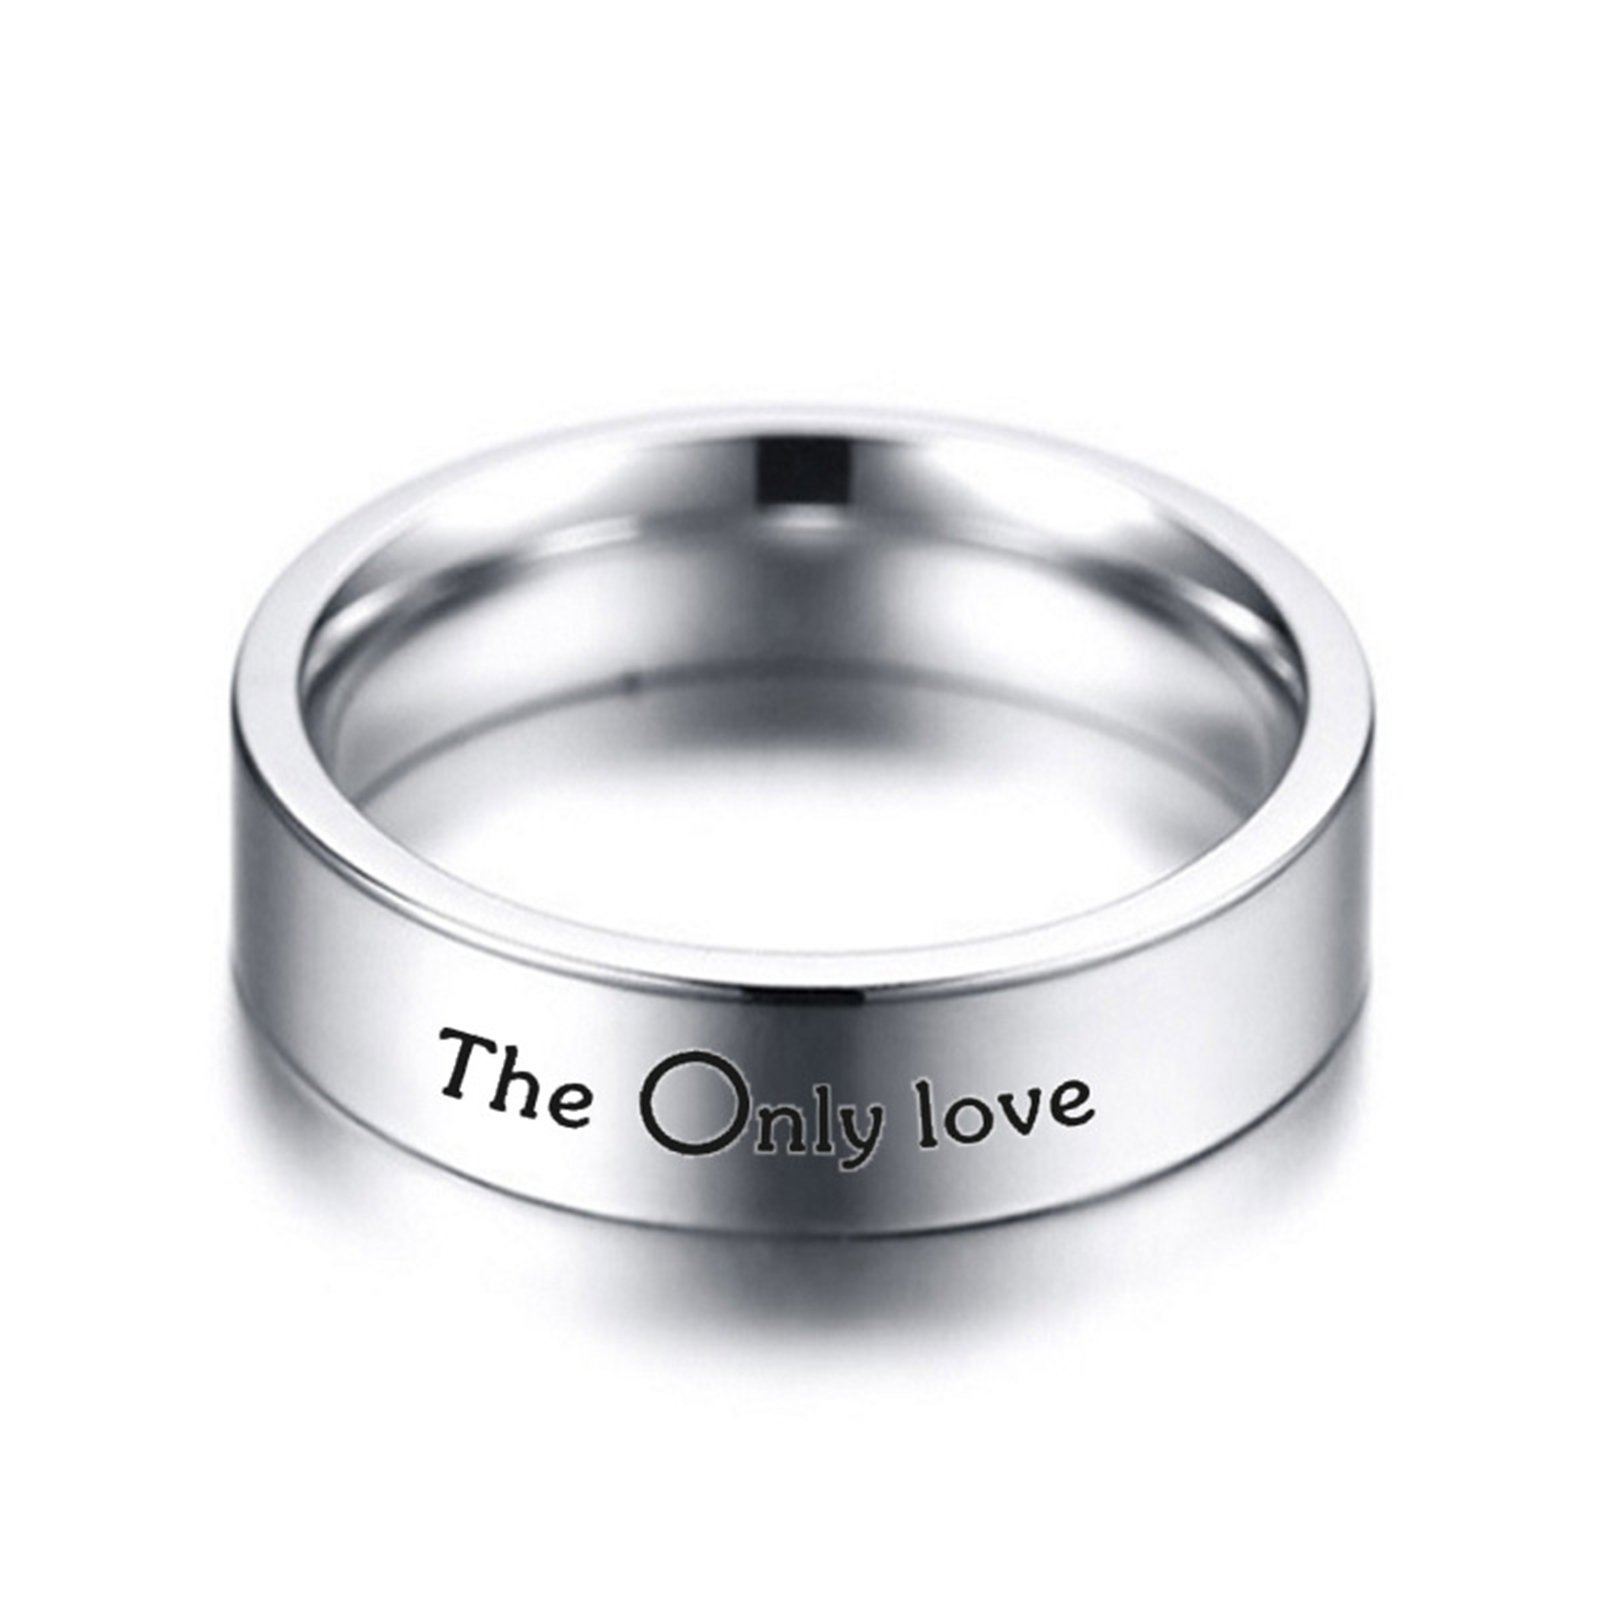 Daesar 1PCS Stainless Steel Rings Couple Ring Engraving The Only Love Ring Commitment To Personalized Silver Ring Size 10 by Daesar (Image #2)